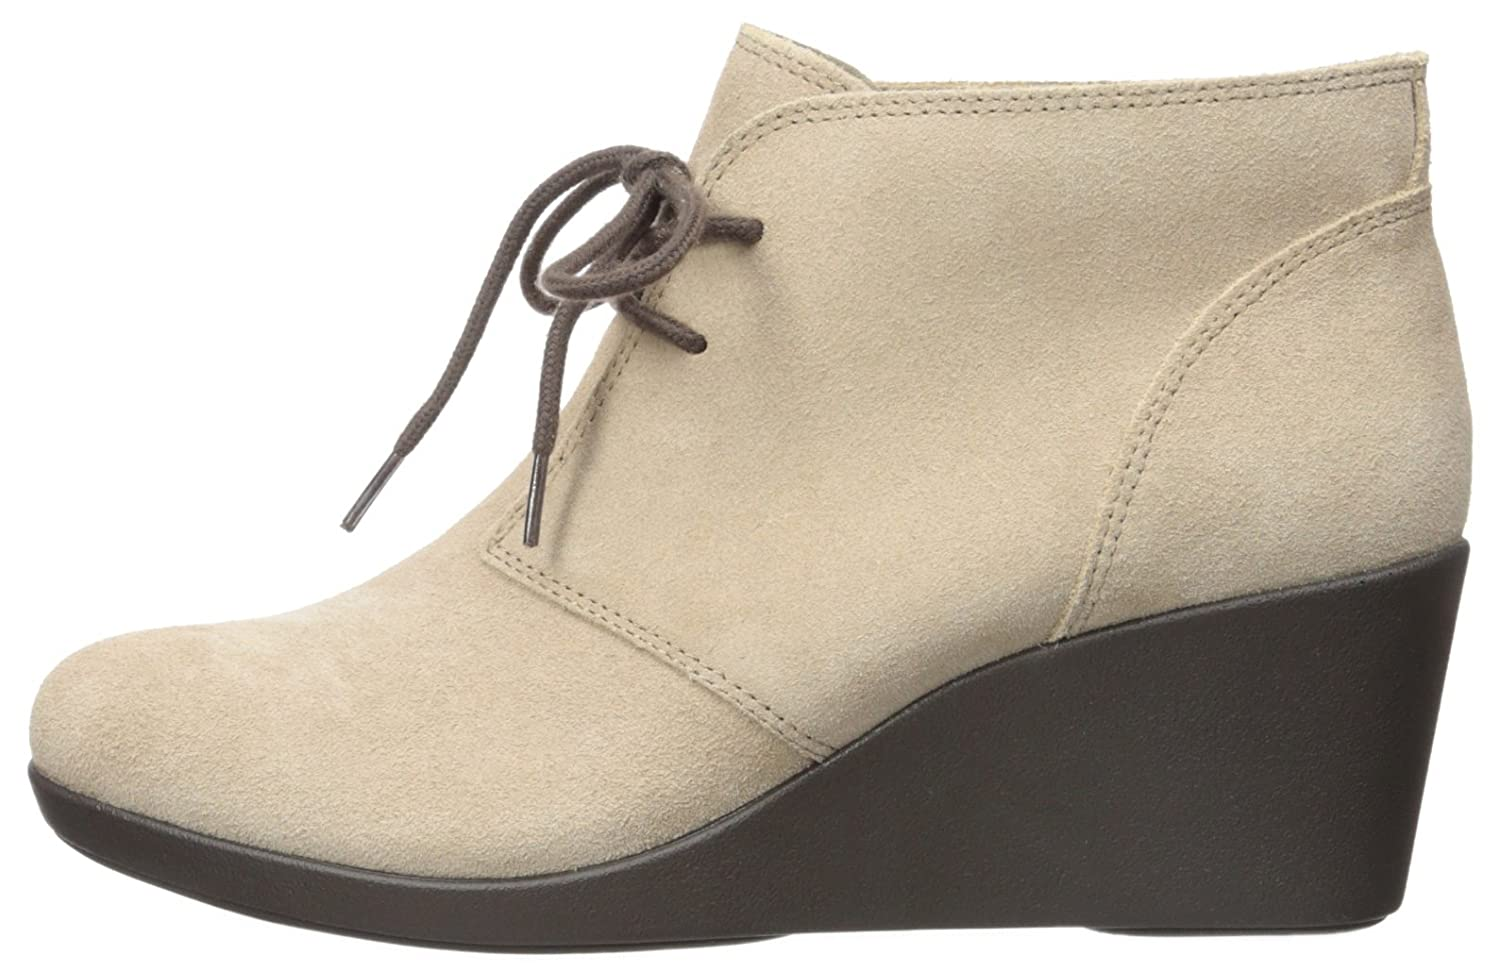 Crocs Women's Leigh Suede Wedge Shootie Boot B01A6LM5Q4 8 B(M) US|Tan